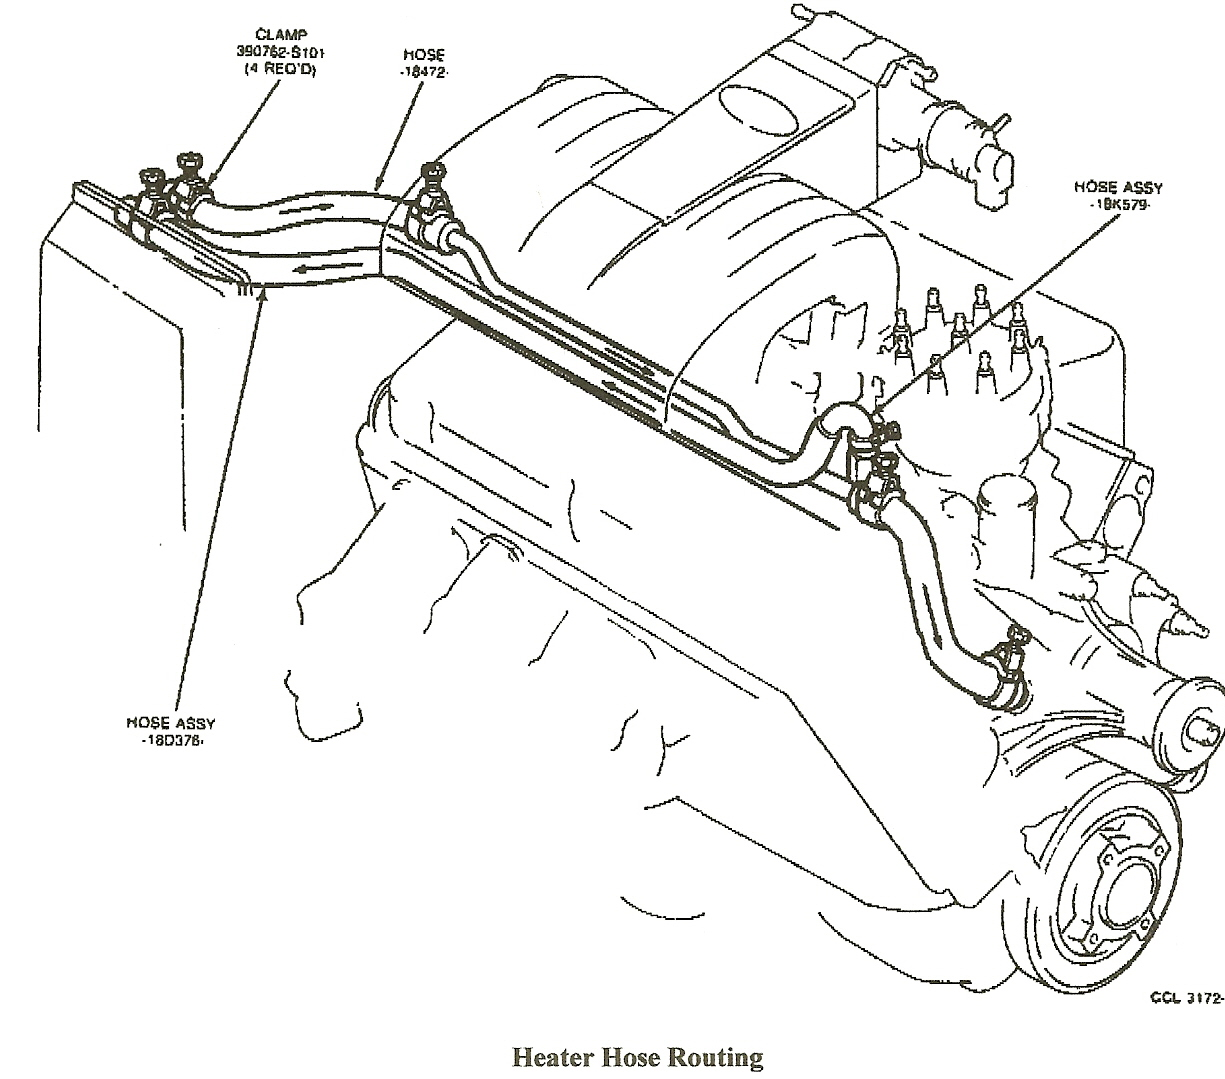 Speed Control additionally Mercury  et 1964 Instrument Wiring likewise Head Gasket Repair 91 Chevy 43 Liter moreover Not Getting Oil To Rockers as well 1965 Mustang Wiring Diagrams. on no oil pressure ford 302